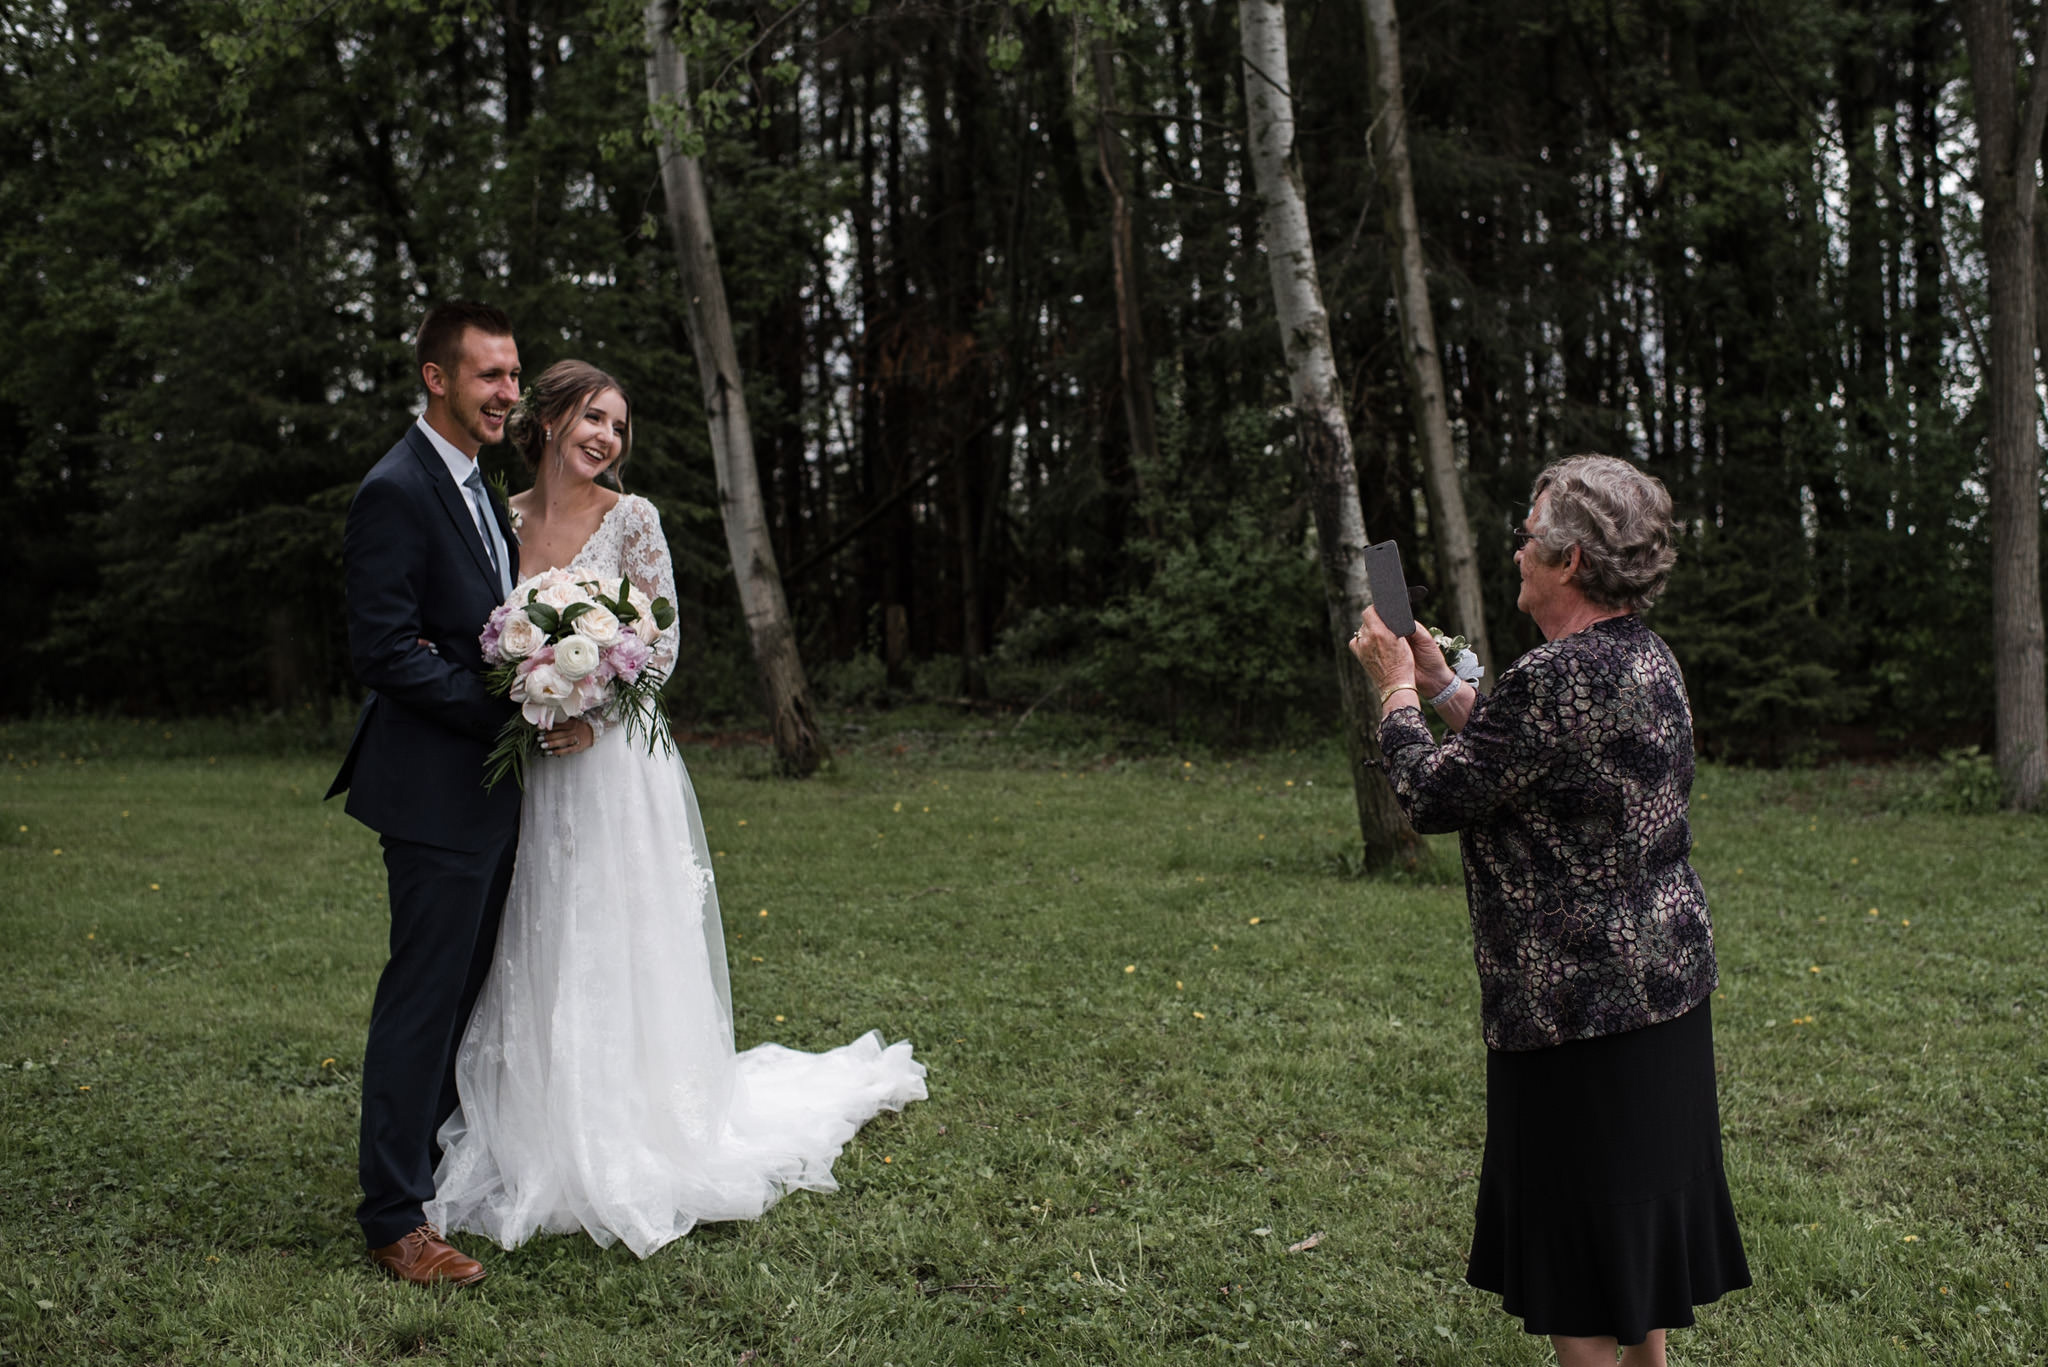 165-candid-moment-grandma-wedding-couple-forest.jpg